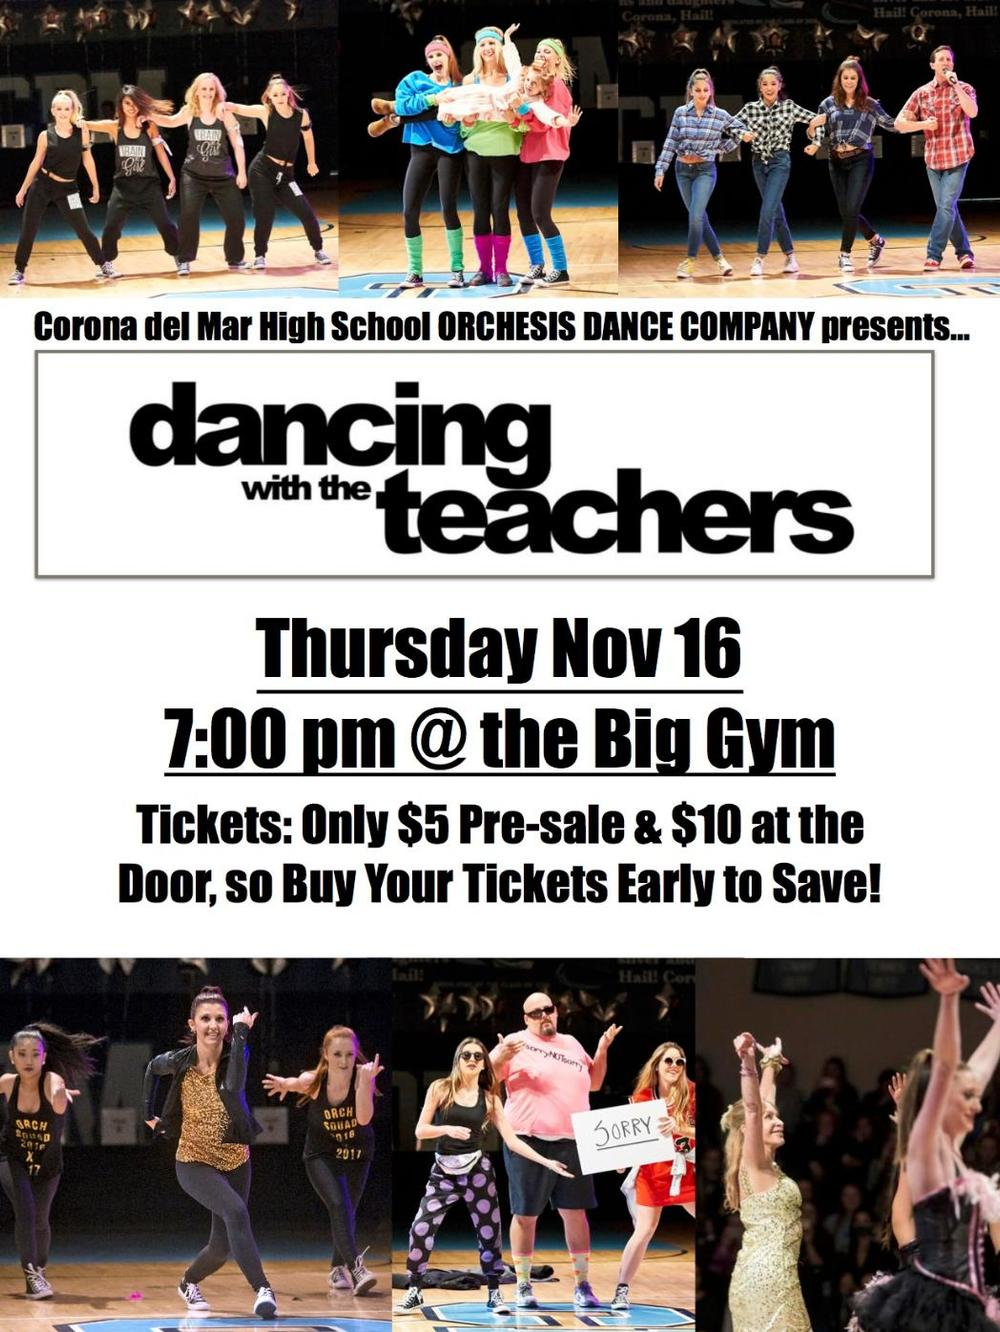 CdM Dancing with the Teachers poster